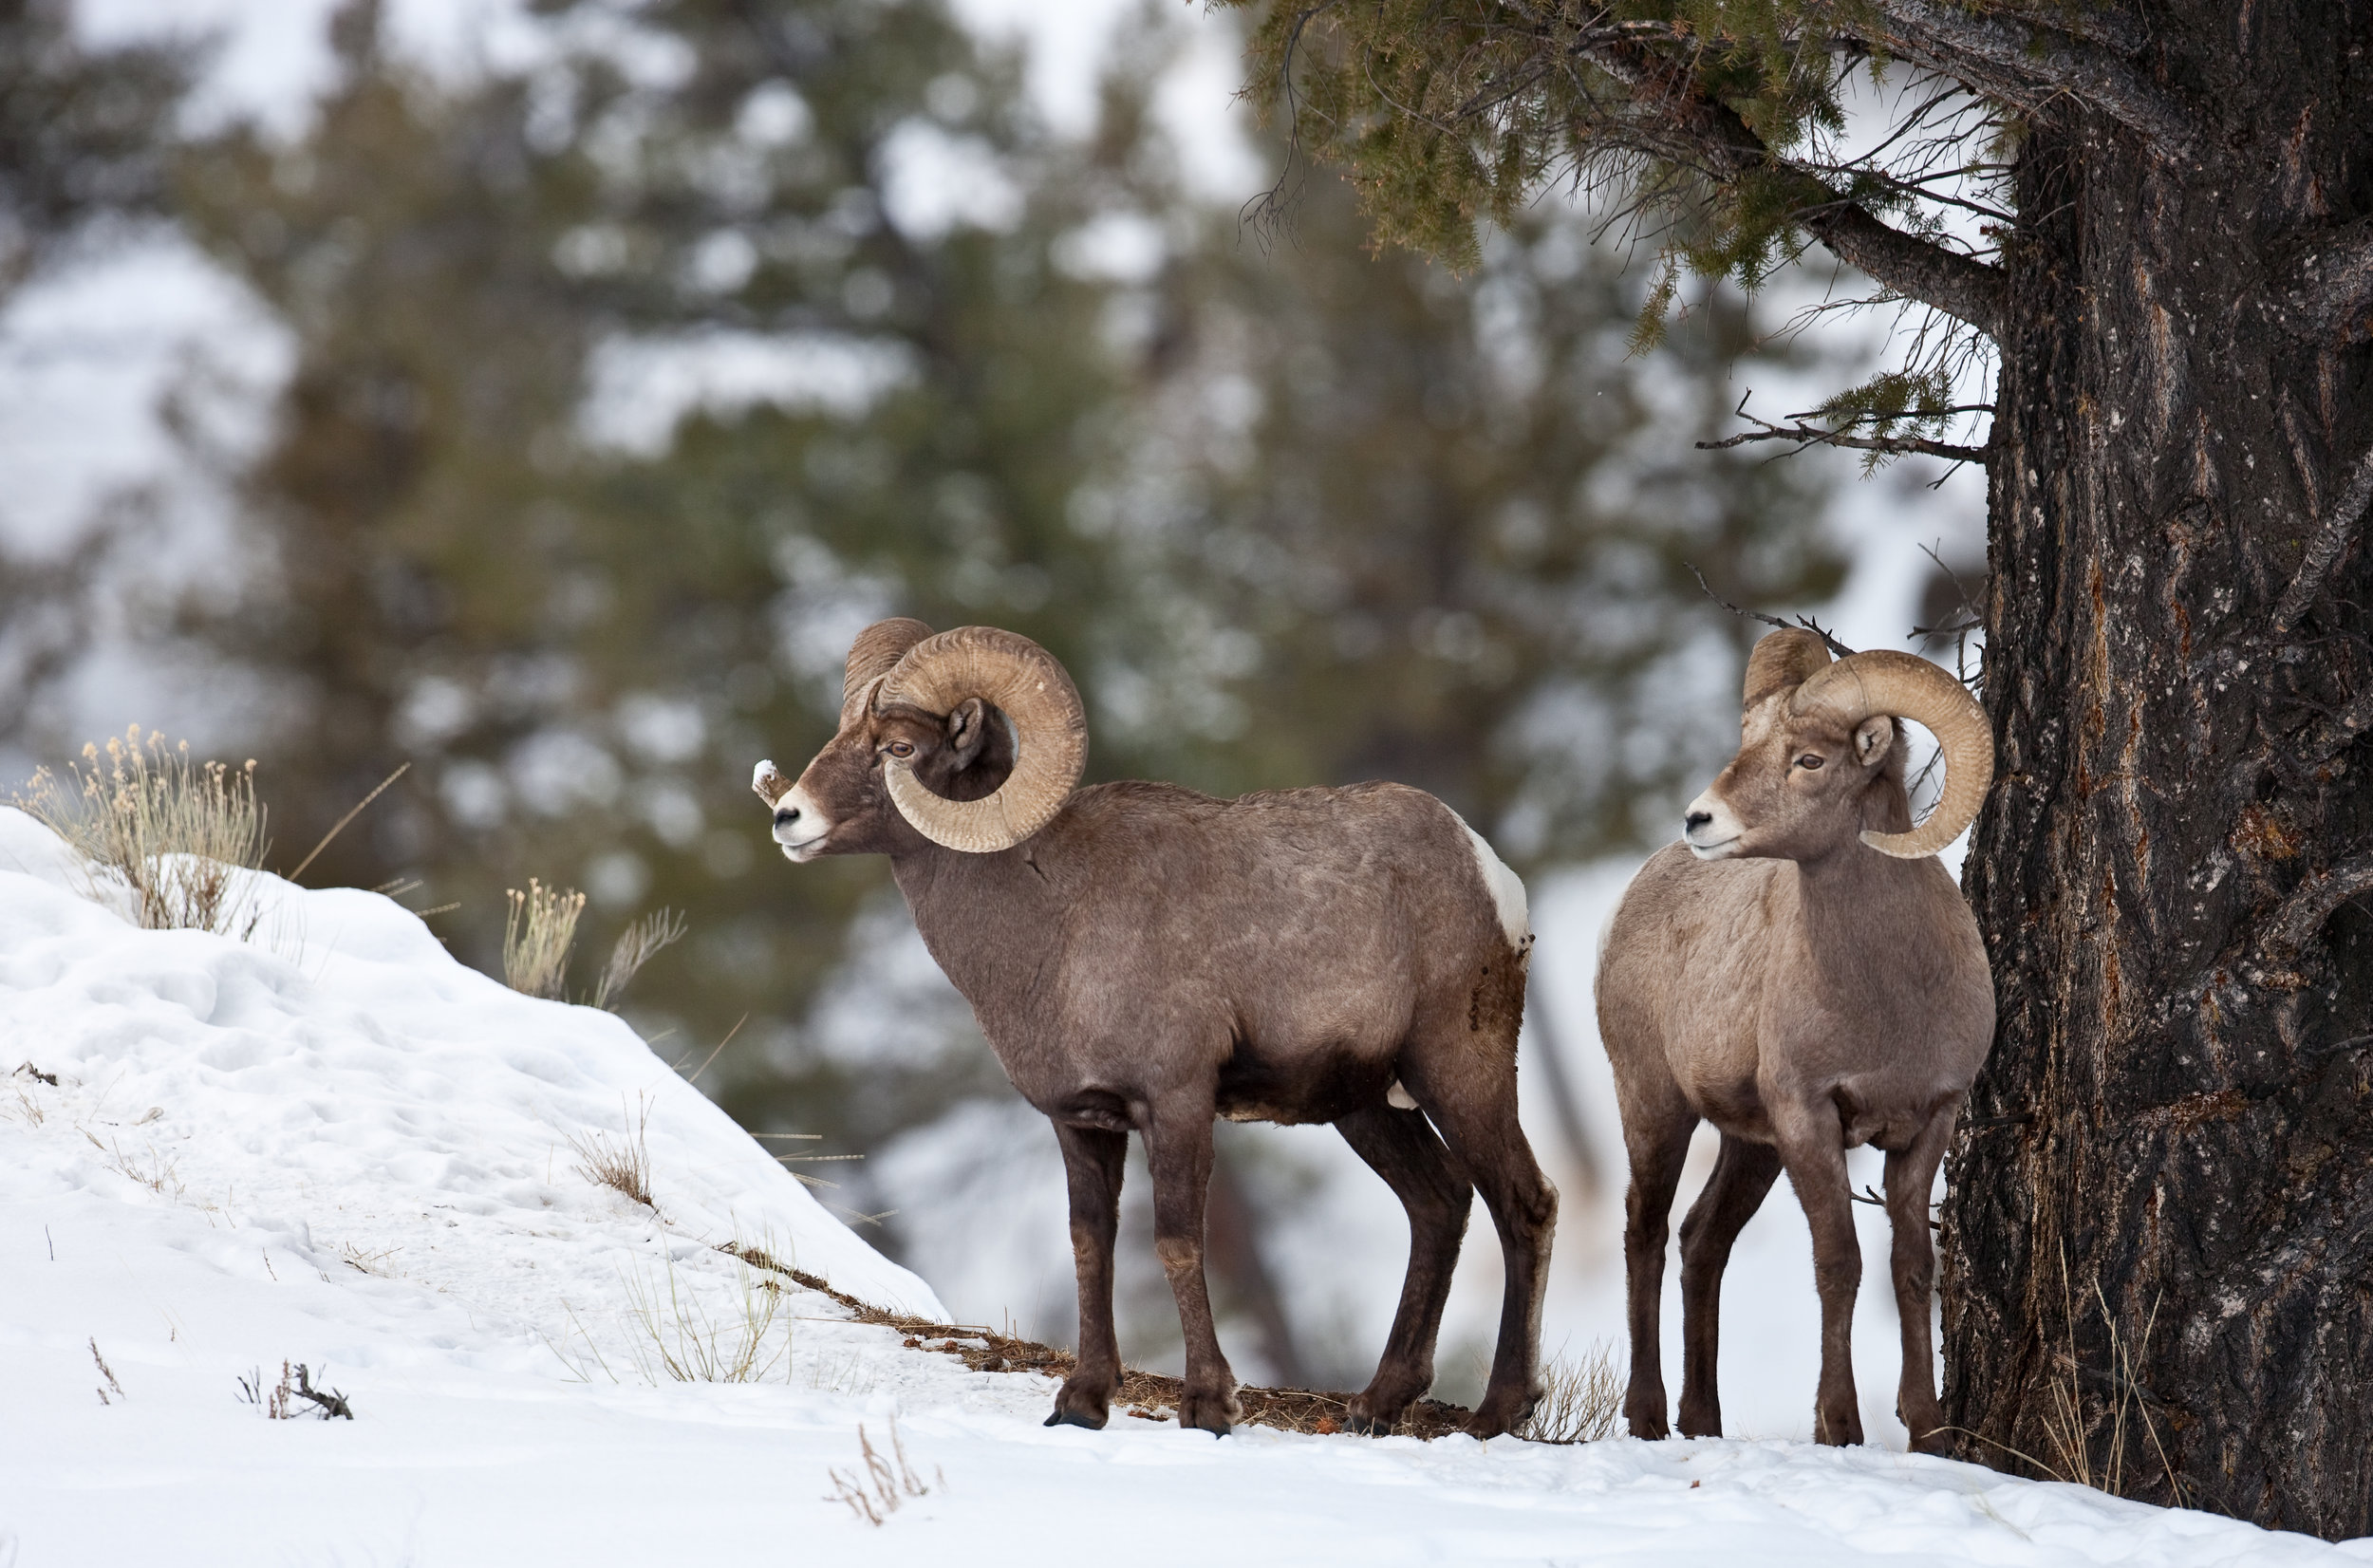 Bighorn sheep are dependent on undisturbed, critical winter habitat in order to survive harsh winter conditions. Please - don't poach the powder. (Photo Cindy Goeddel)